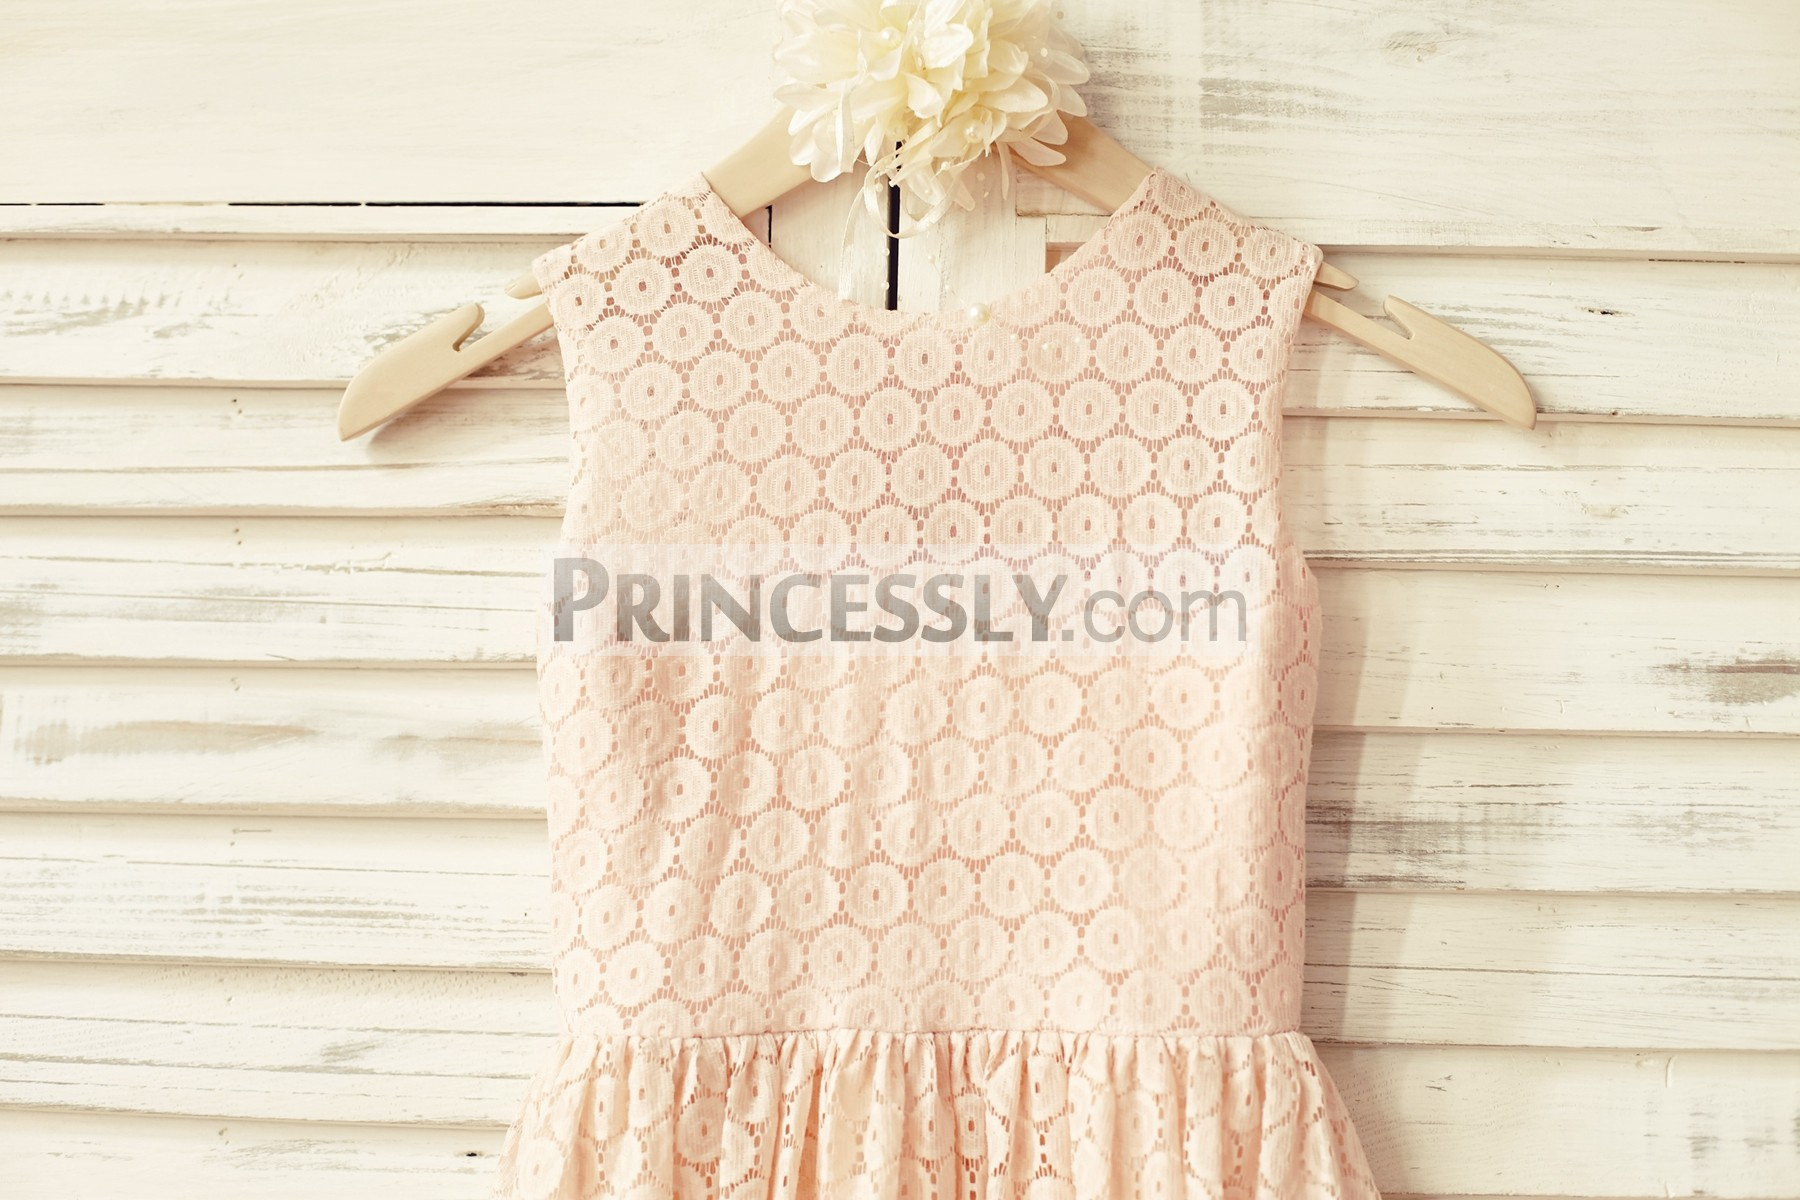 Scoop neck sleeveless blush pink lace bodice